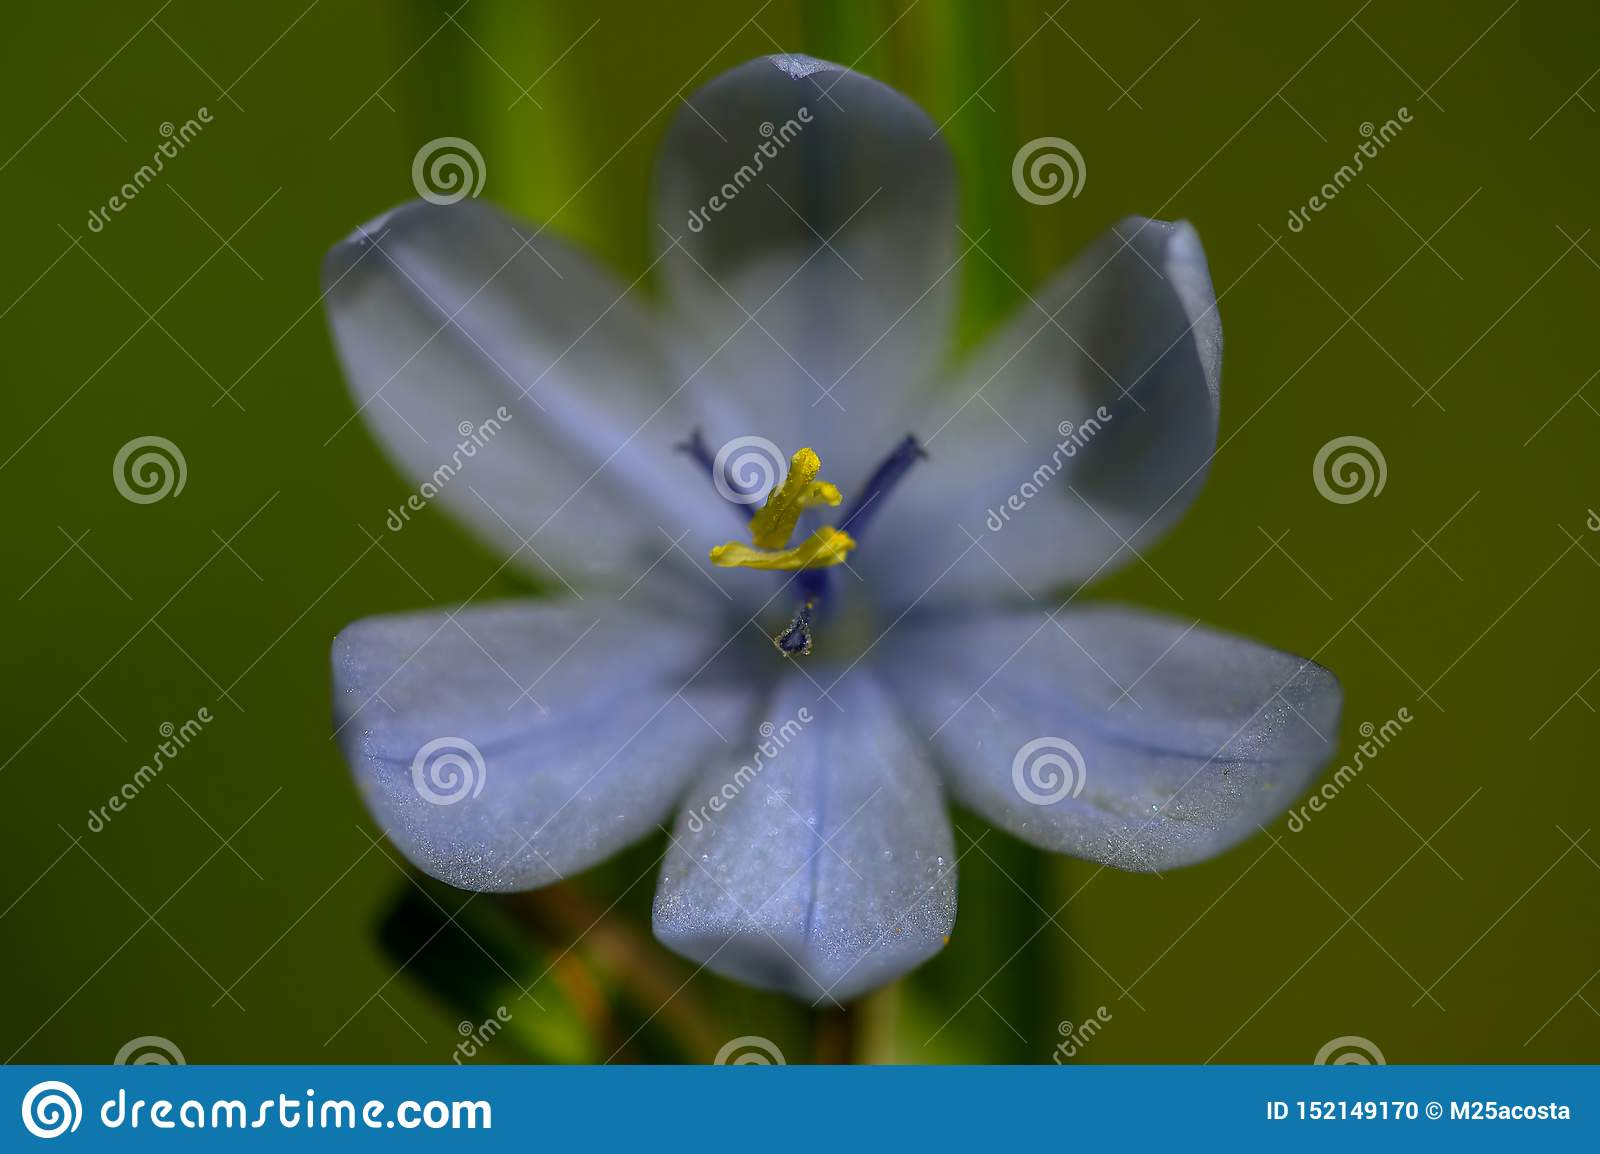 Macro photography of a morning-flag flower